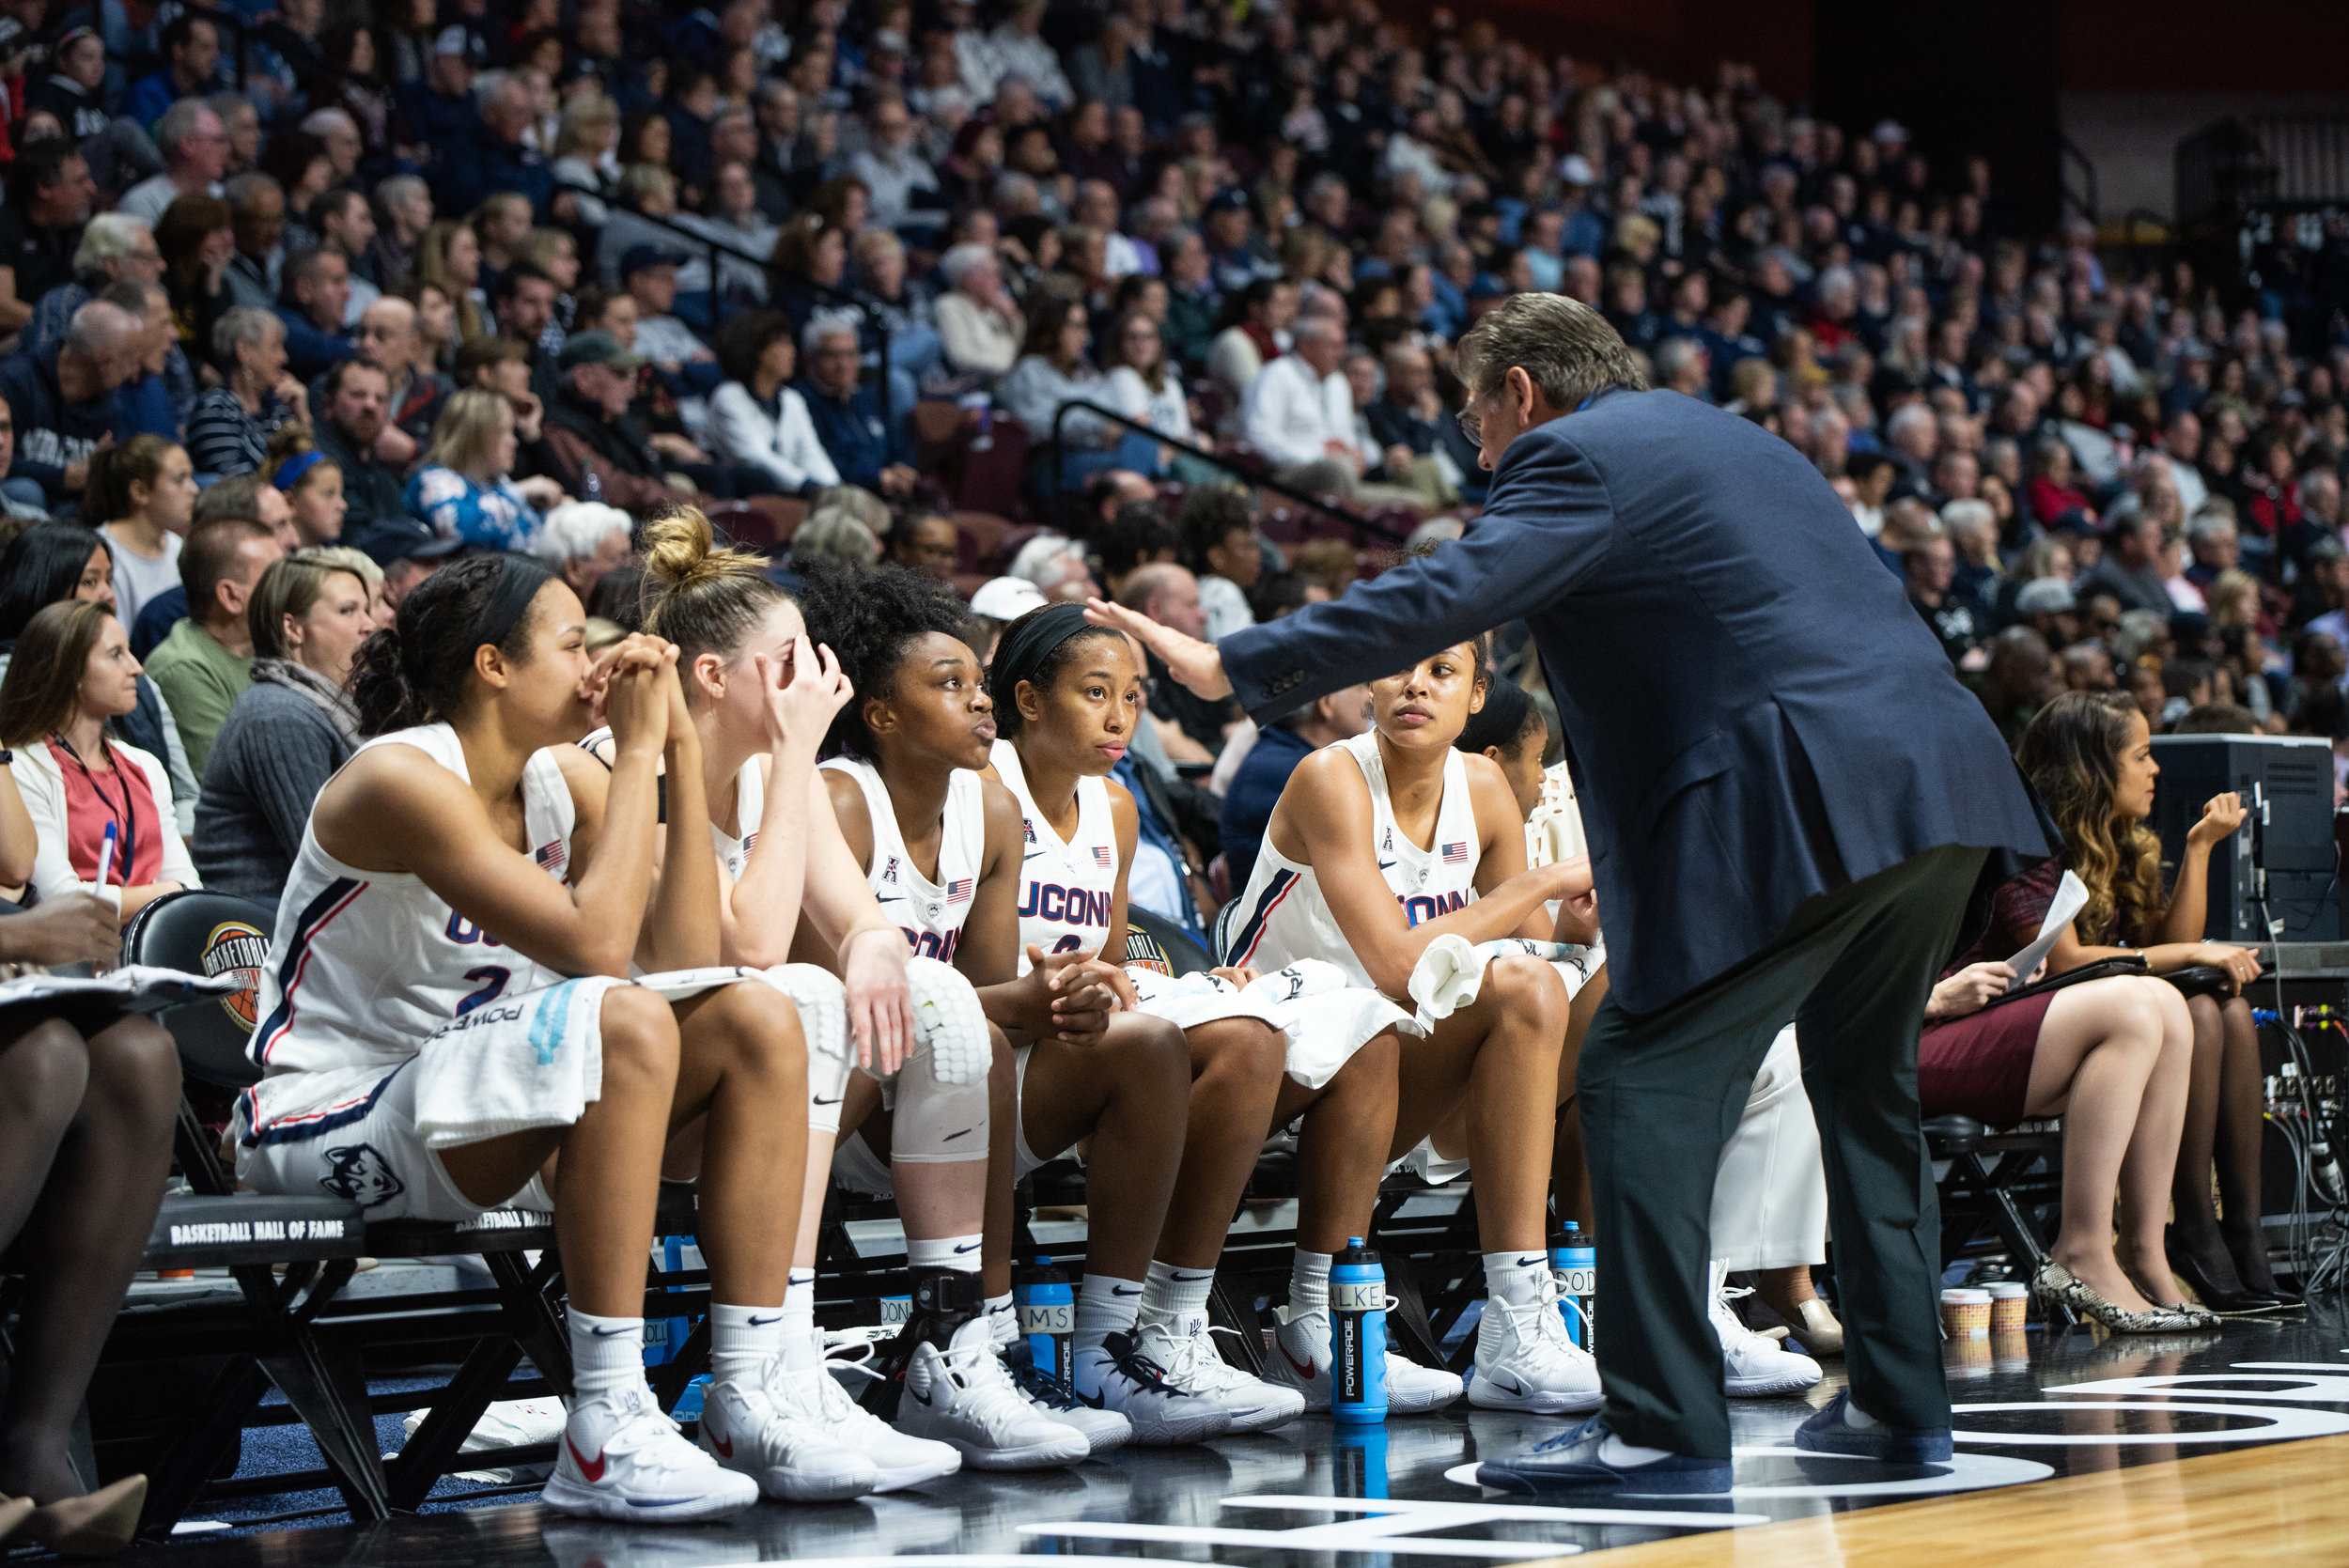 The Huskies pulled out their 125th straight regular season victory Wednesday night at Oklahoma. Photo by Charlotte Lao/The Daily Campus